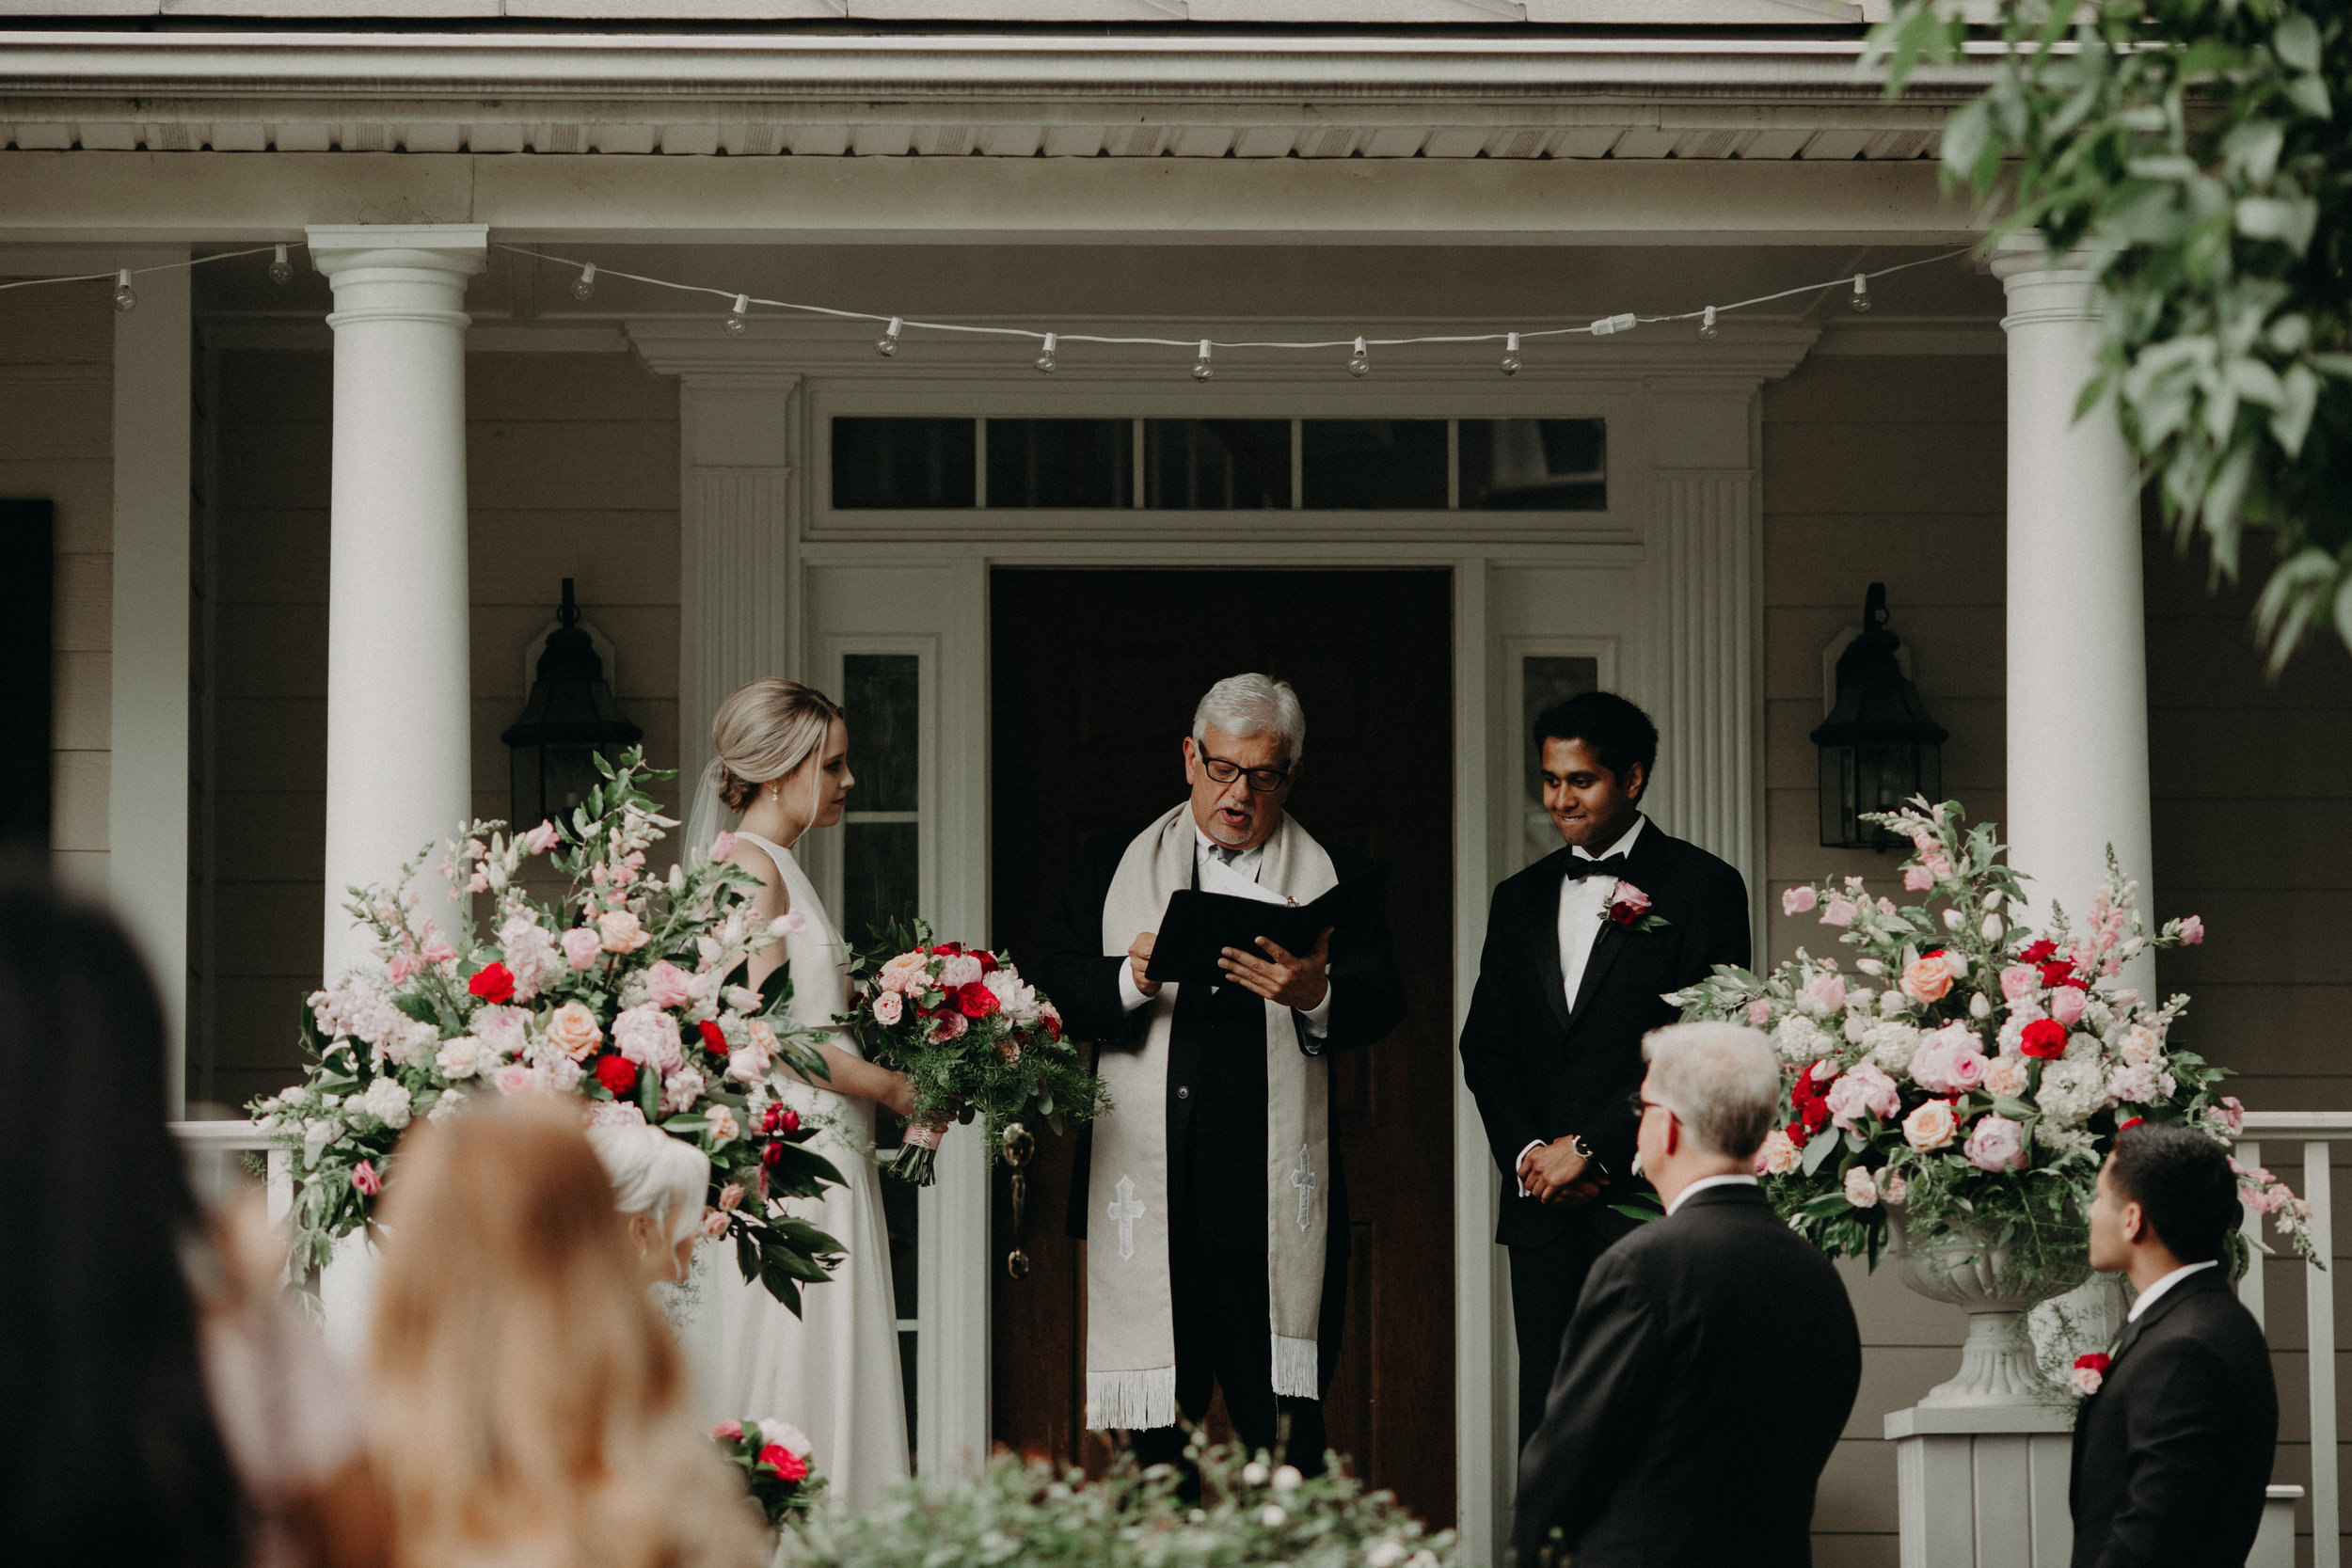 Wedding on Front Porch